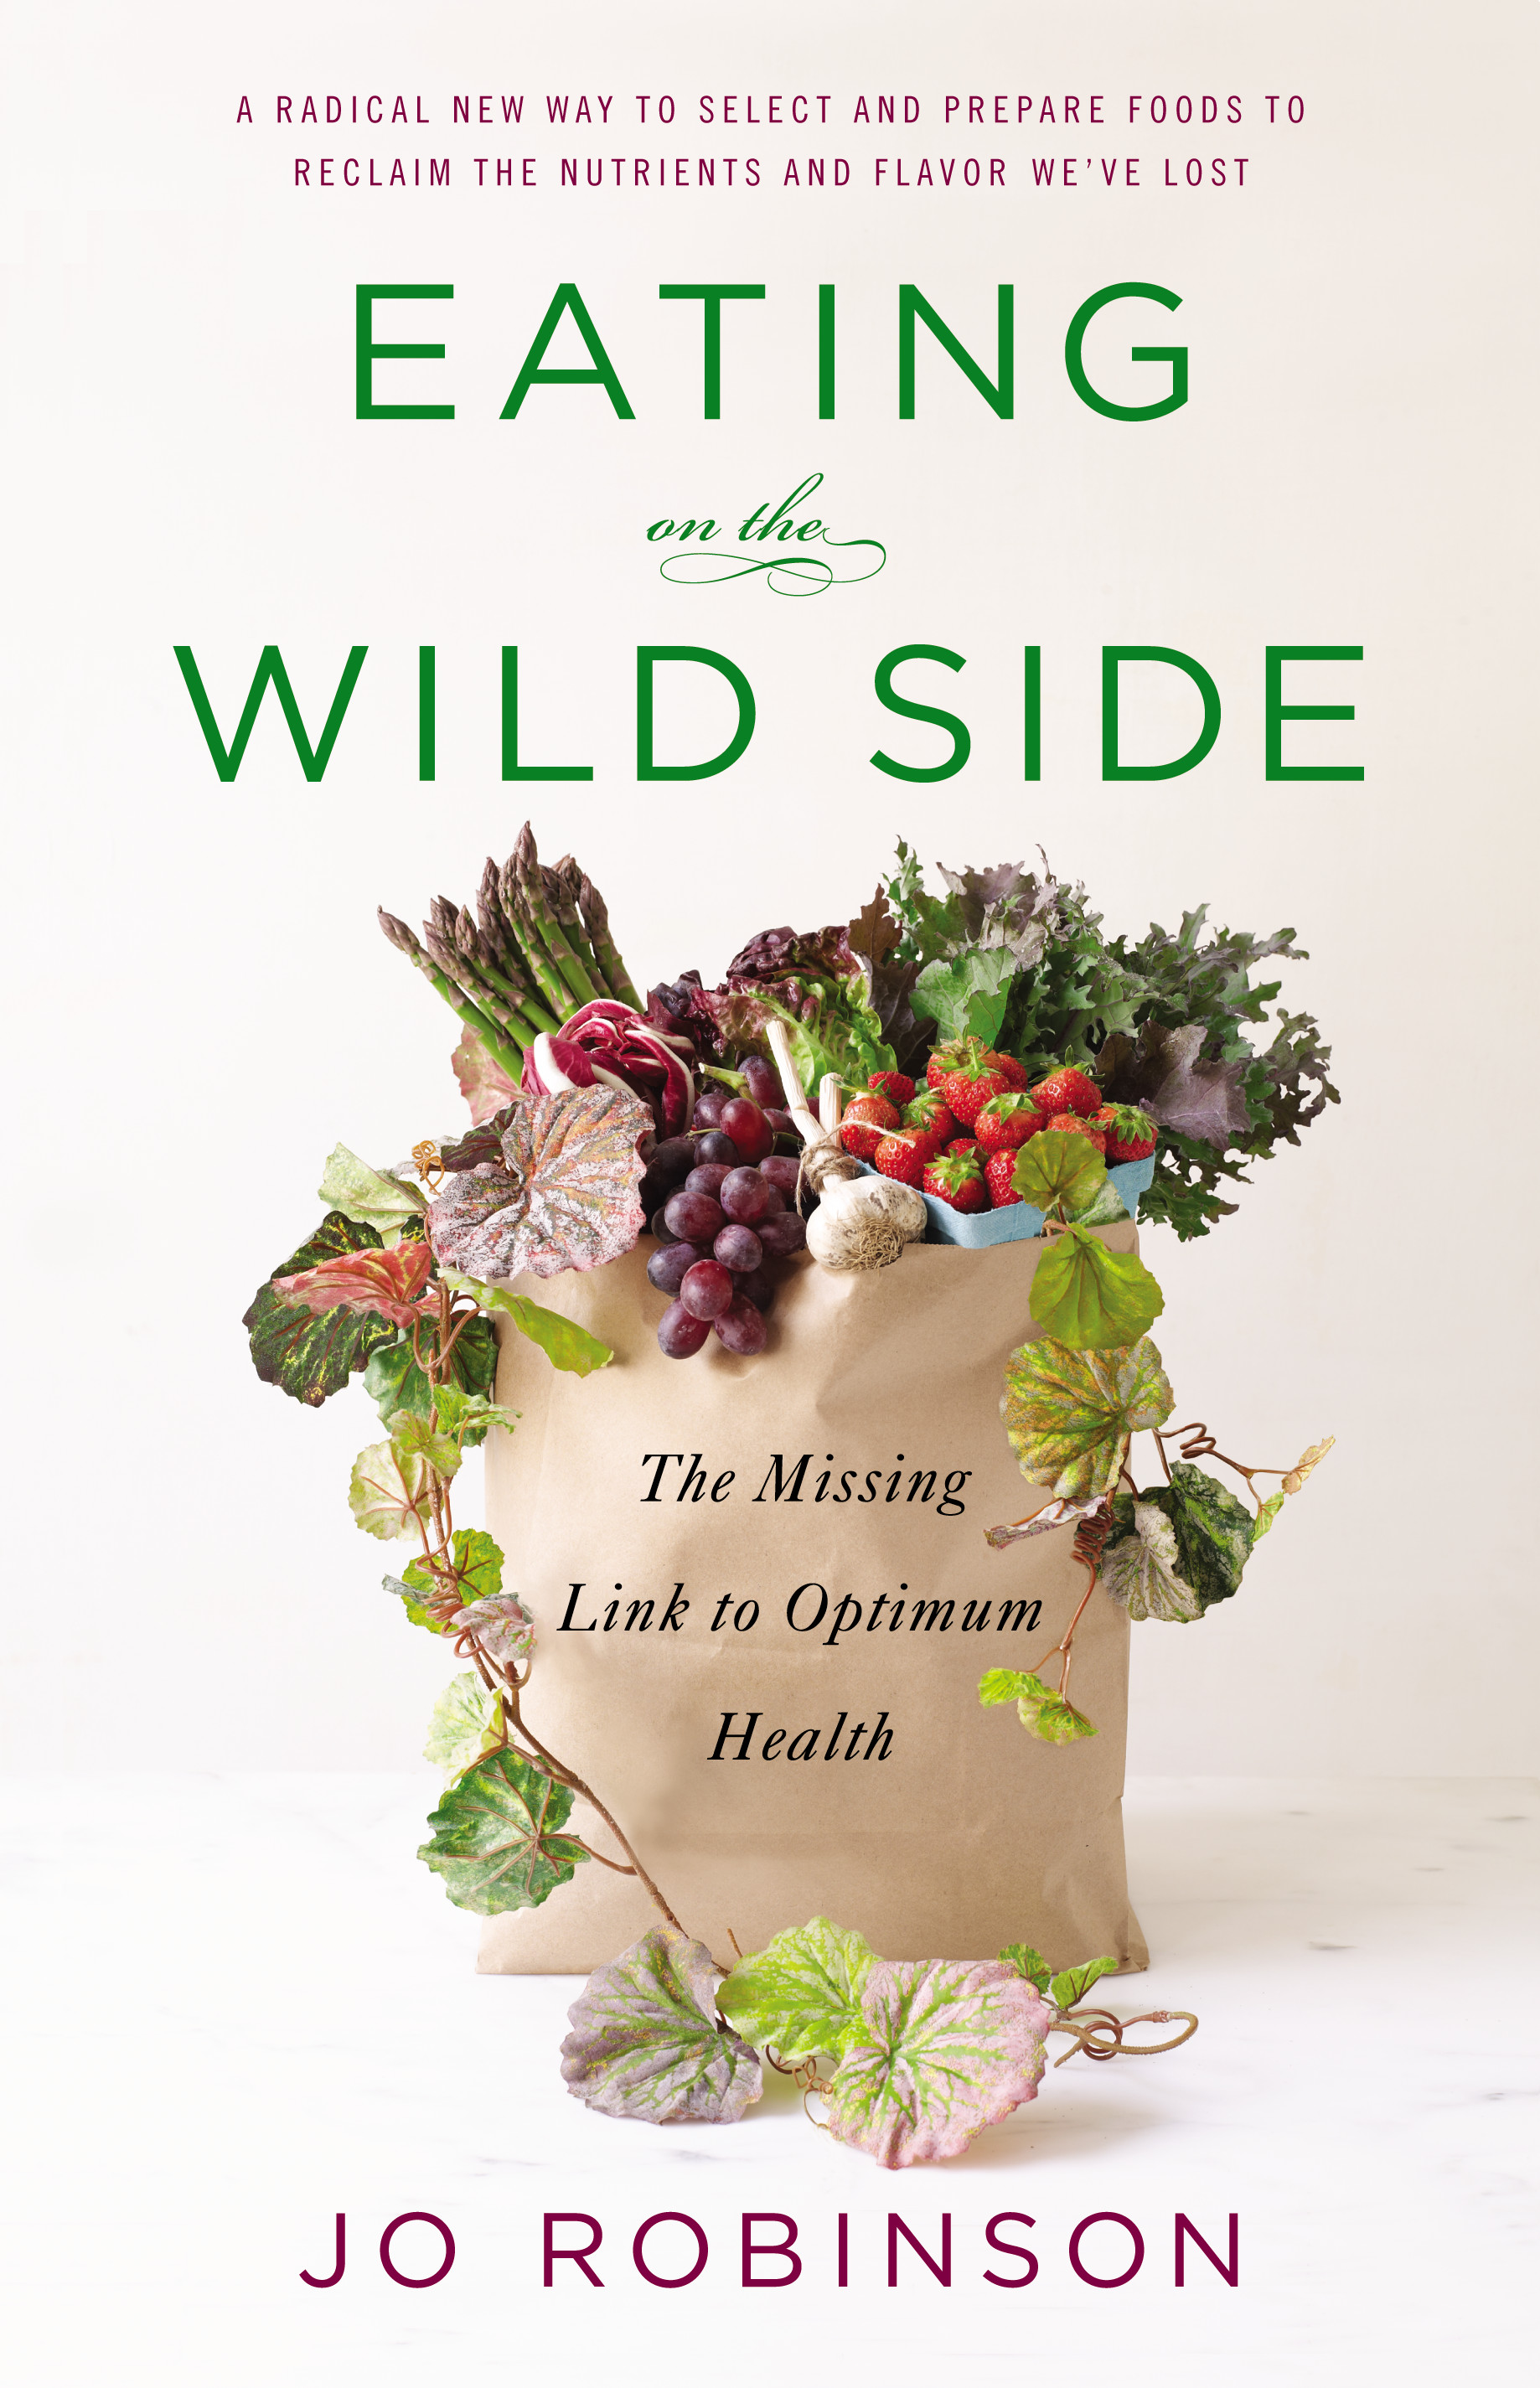 """""""It's about the health benefits of the wild vegetation that's been filtered from our diets."""" $13, barnesandnoble.com"""